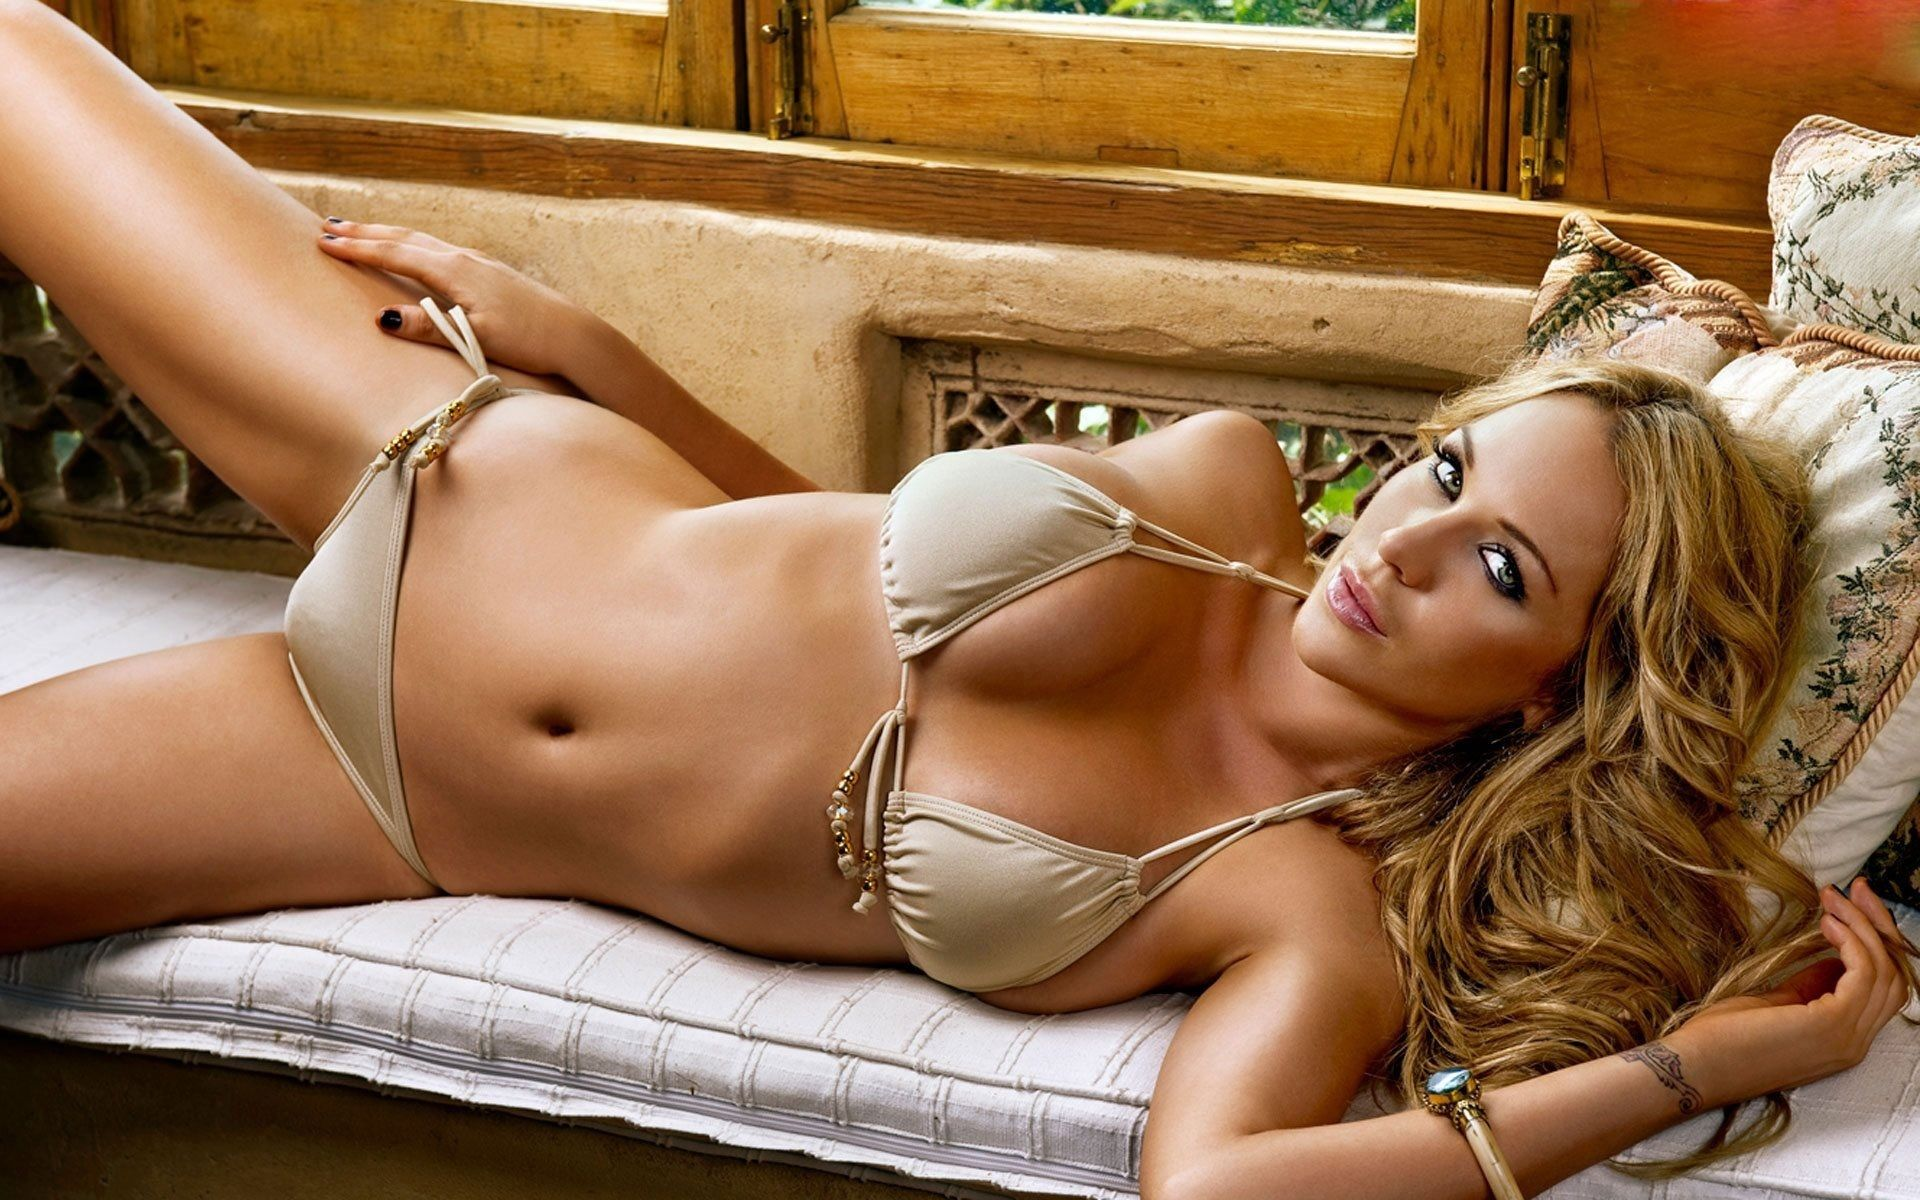 World most sexiest women nude — photo 5